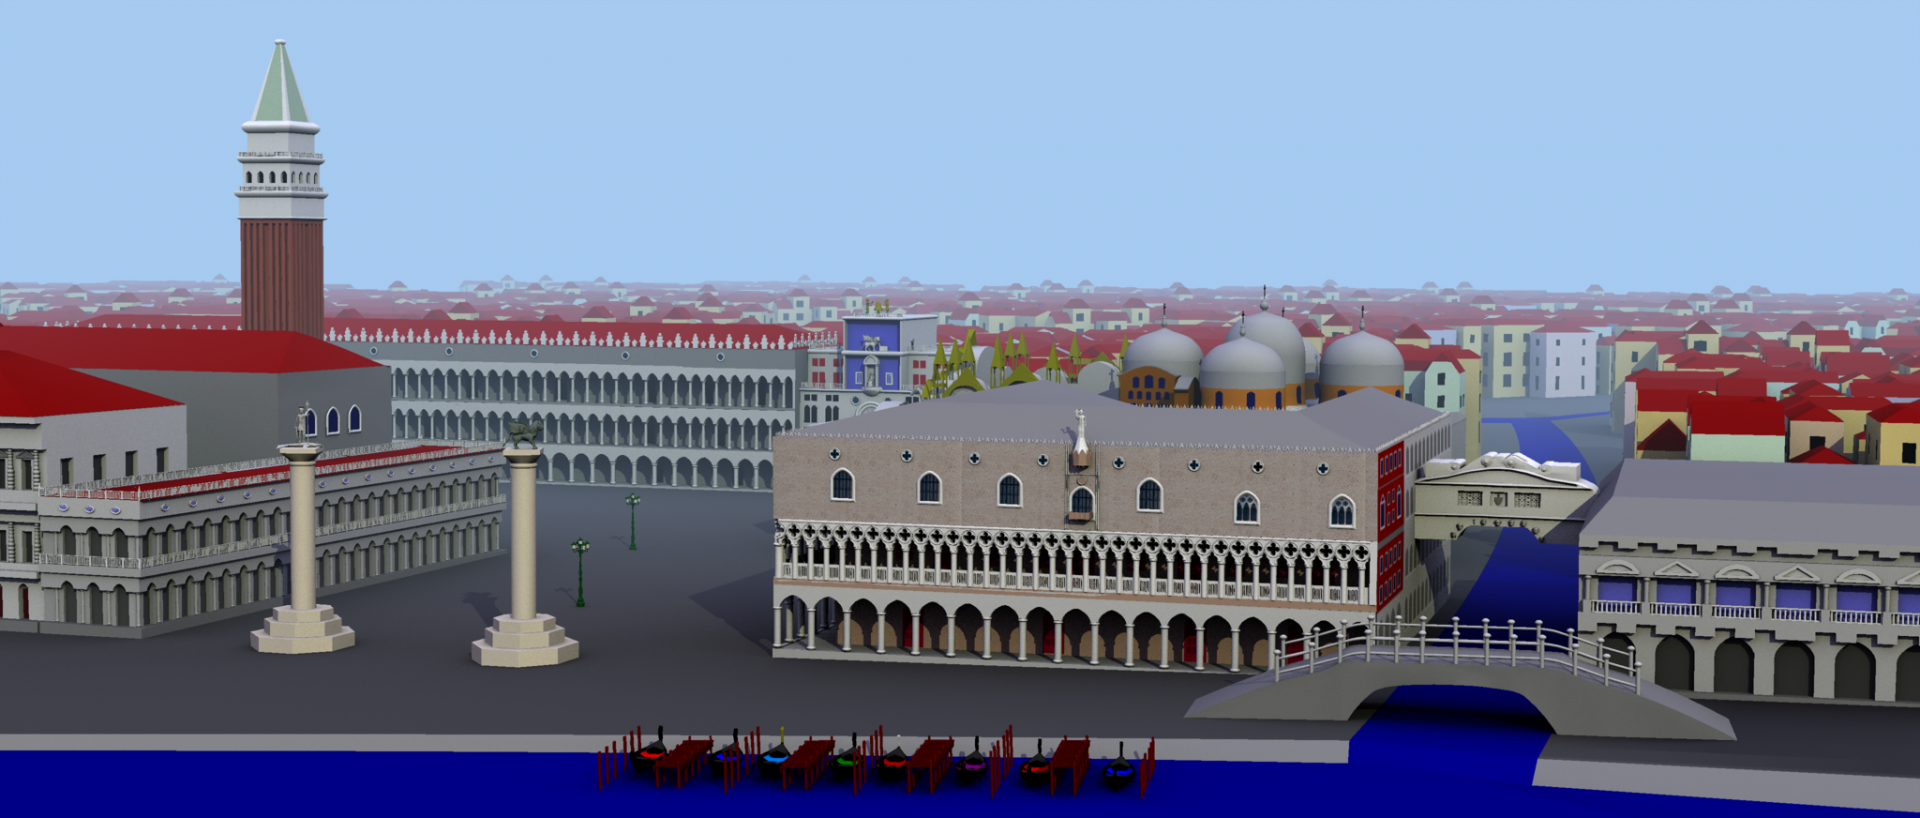 Venice in progress AOg fog0.png